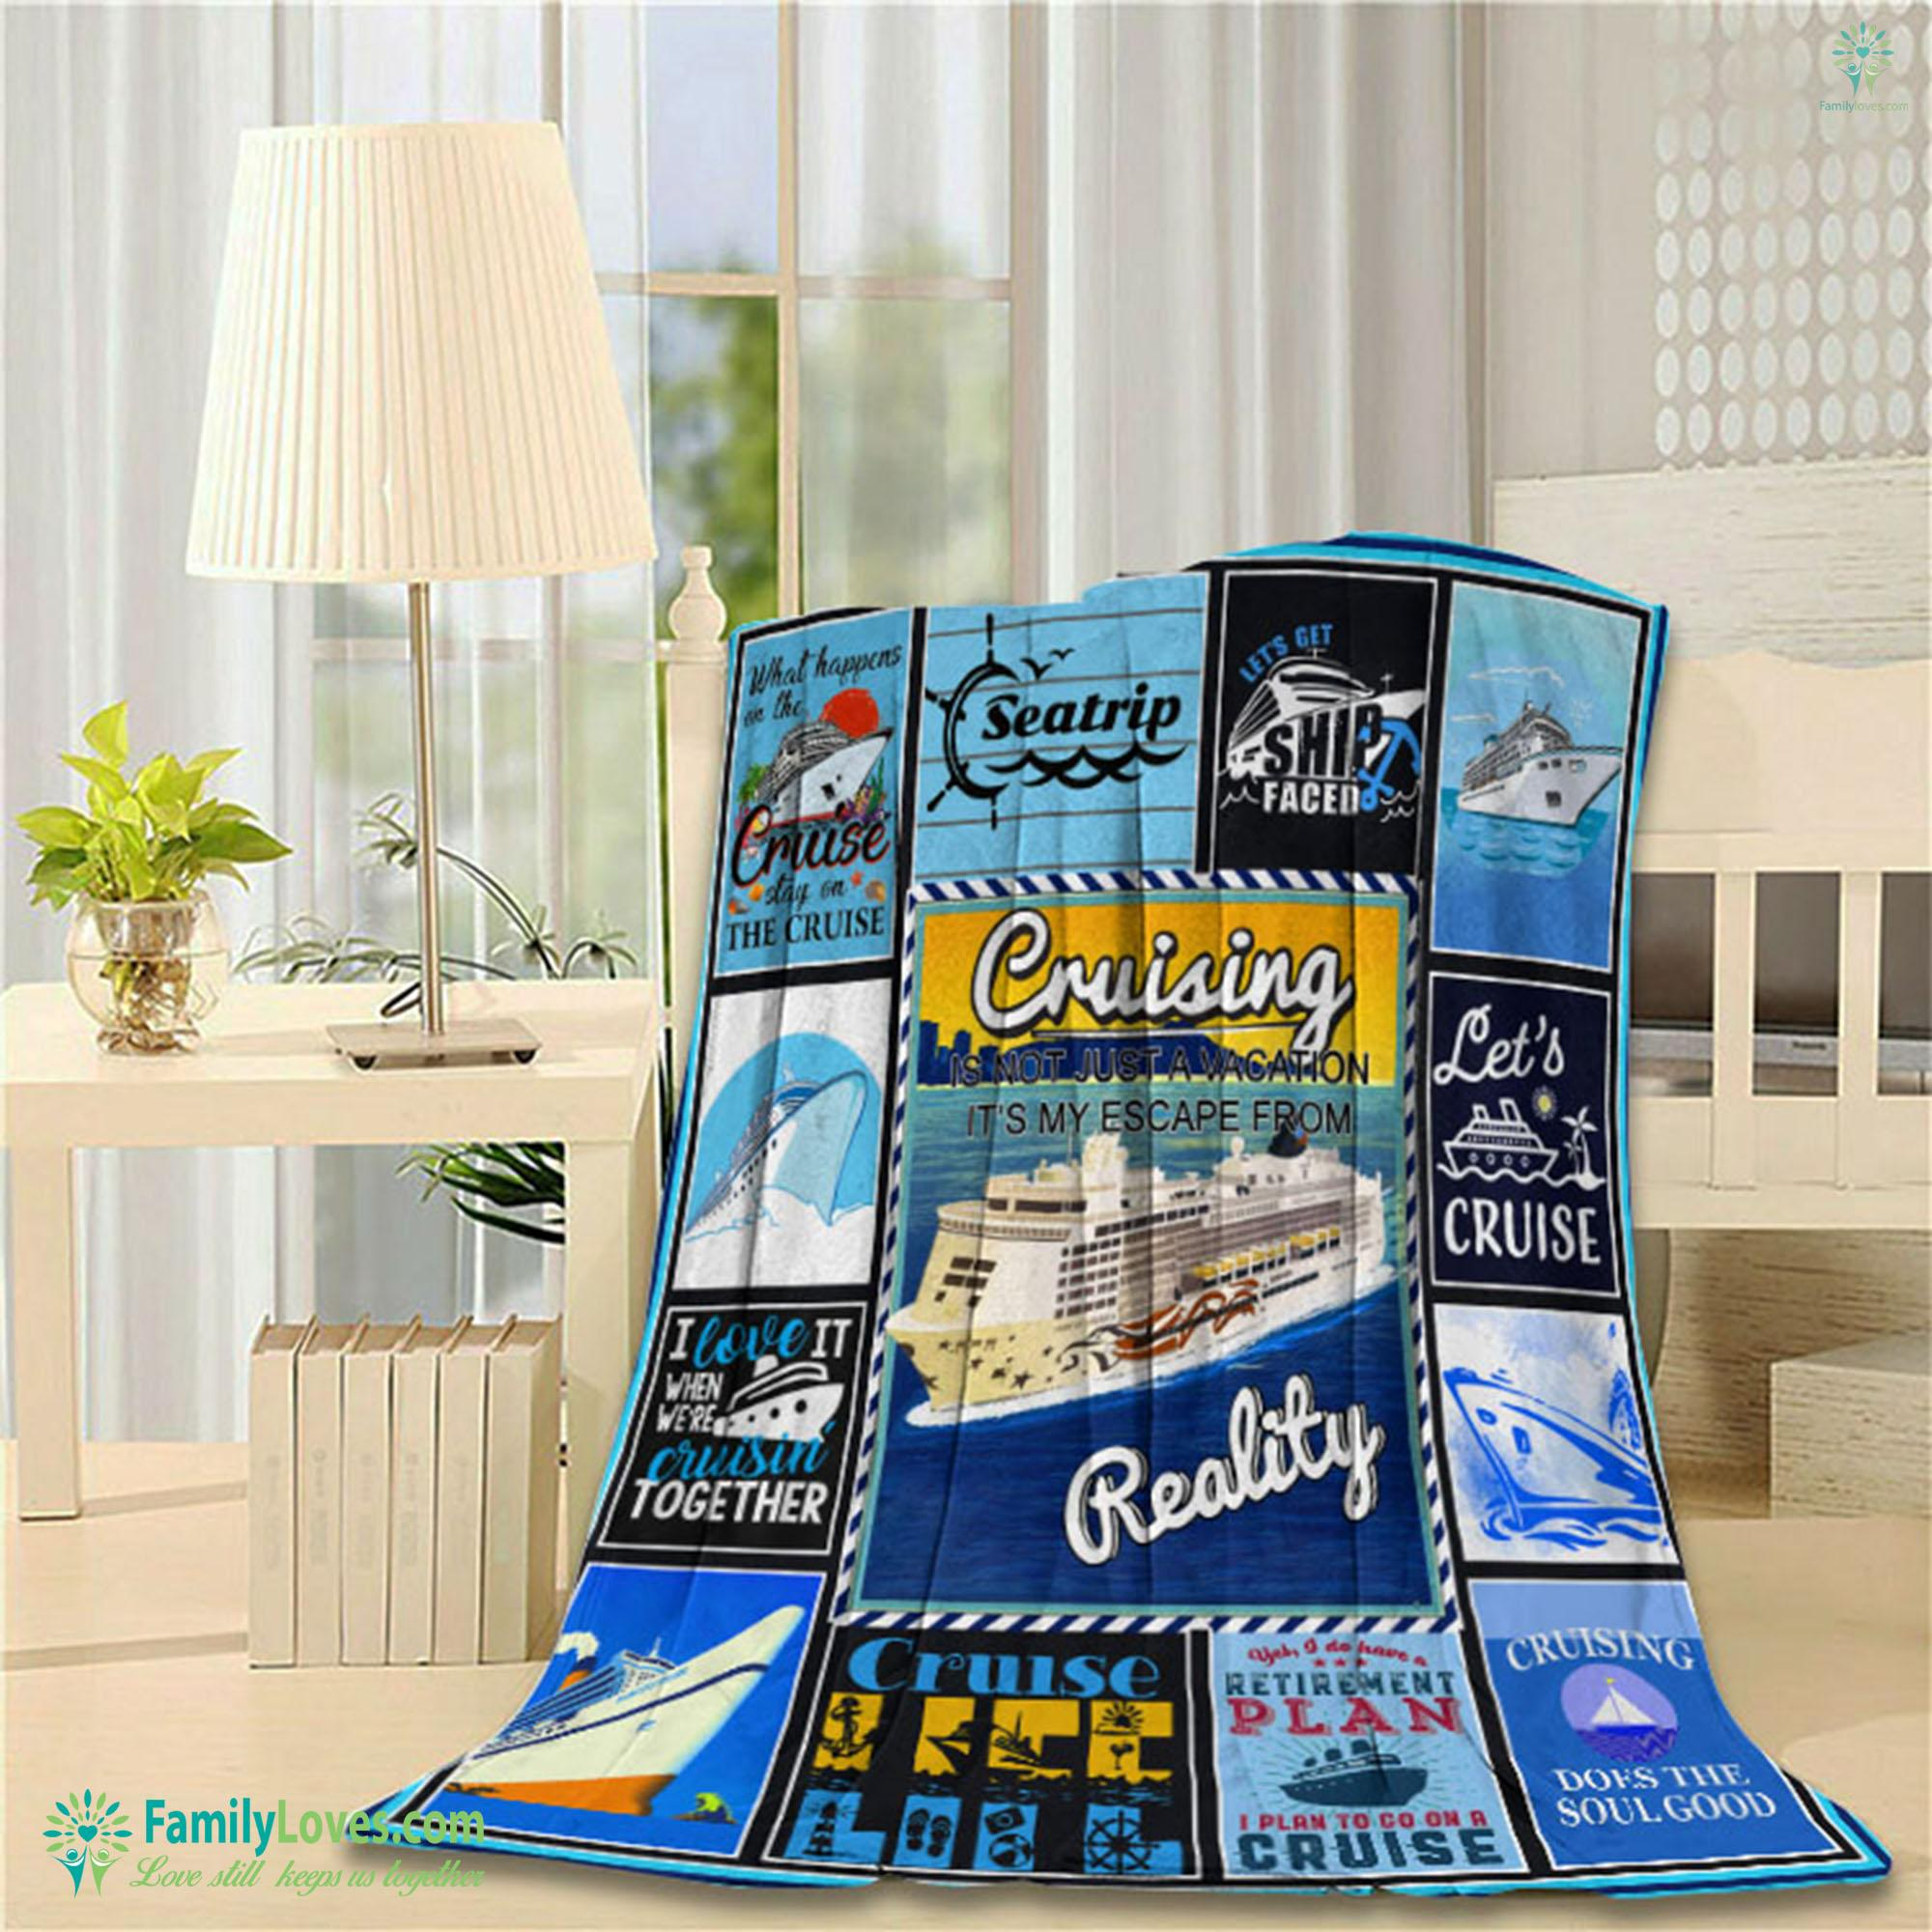 Cruising Isnt Just A Vacation Its My Escape From Reality Blanket 5 Familyloves.com